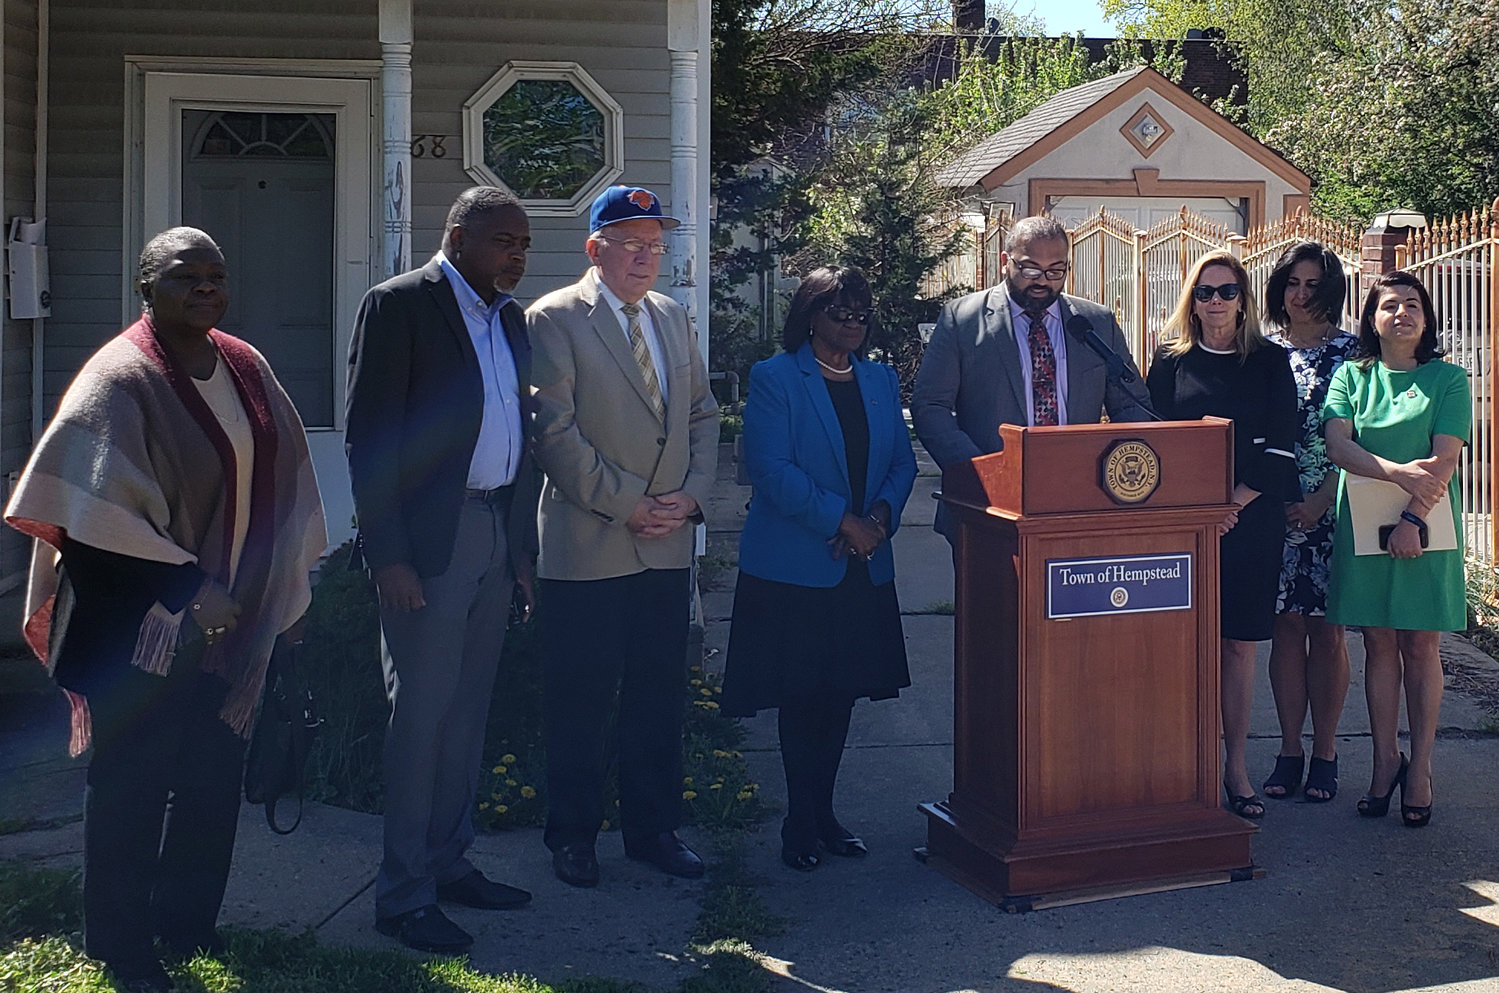 State Sens. Kevin Thomas, at lectern, Anna Kaplan, far right, and Town Supervisor Laura Gillen, third from right, held a news conference April 24 in front of a vacant home in Hempstead to address the area's shortage of affordable housing.